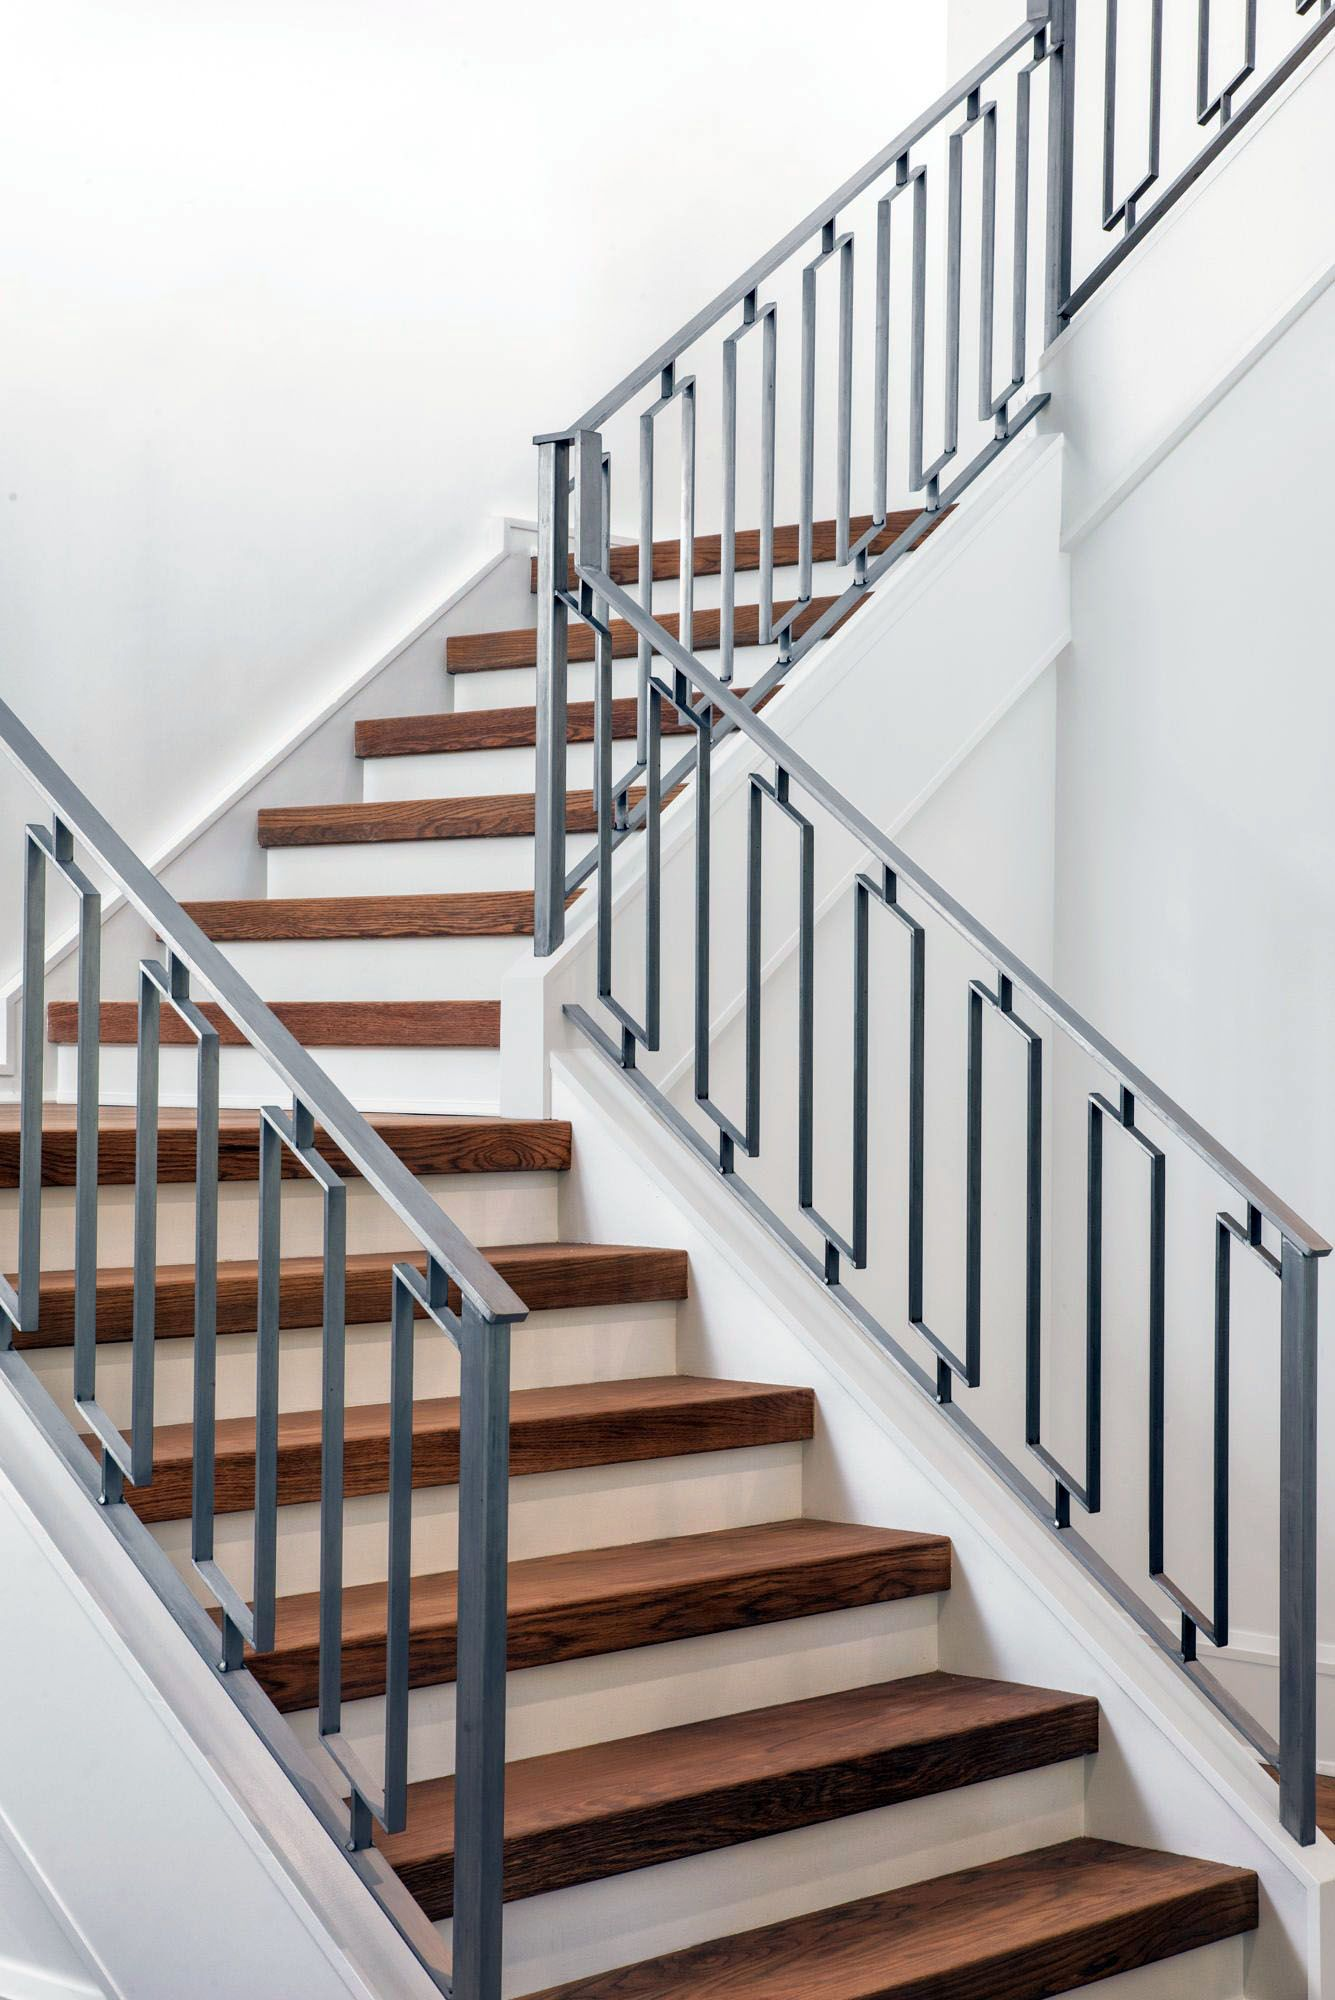 The Next Level 14 Stair Railings To Elevate Your Home Design Homes Tre Staircase Railing Design Stair Railing Design Staircase Railings